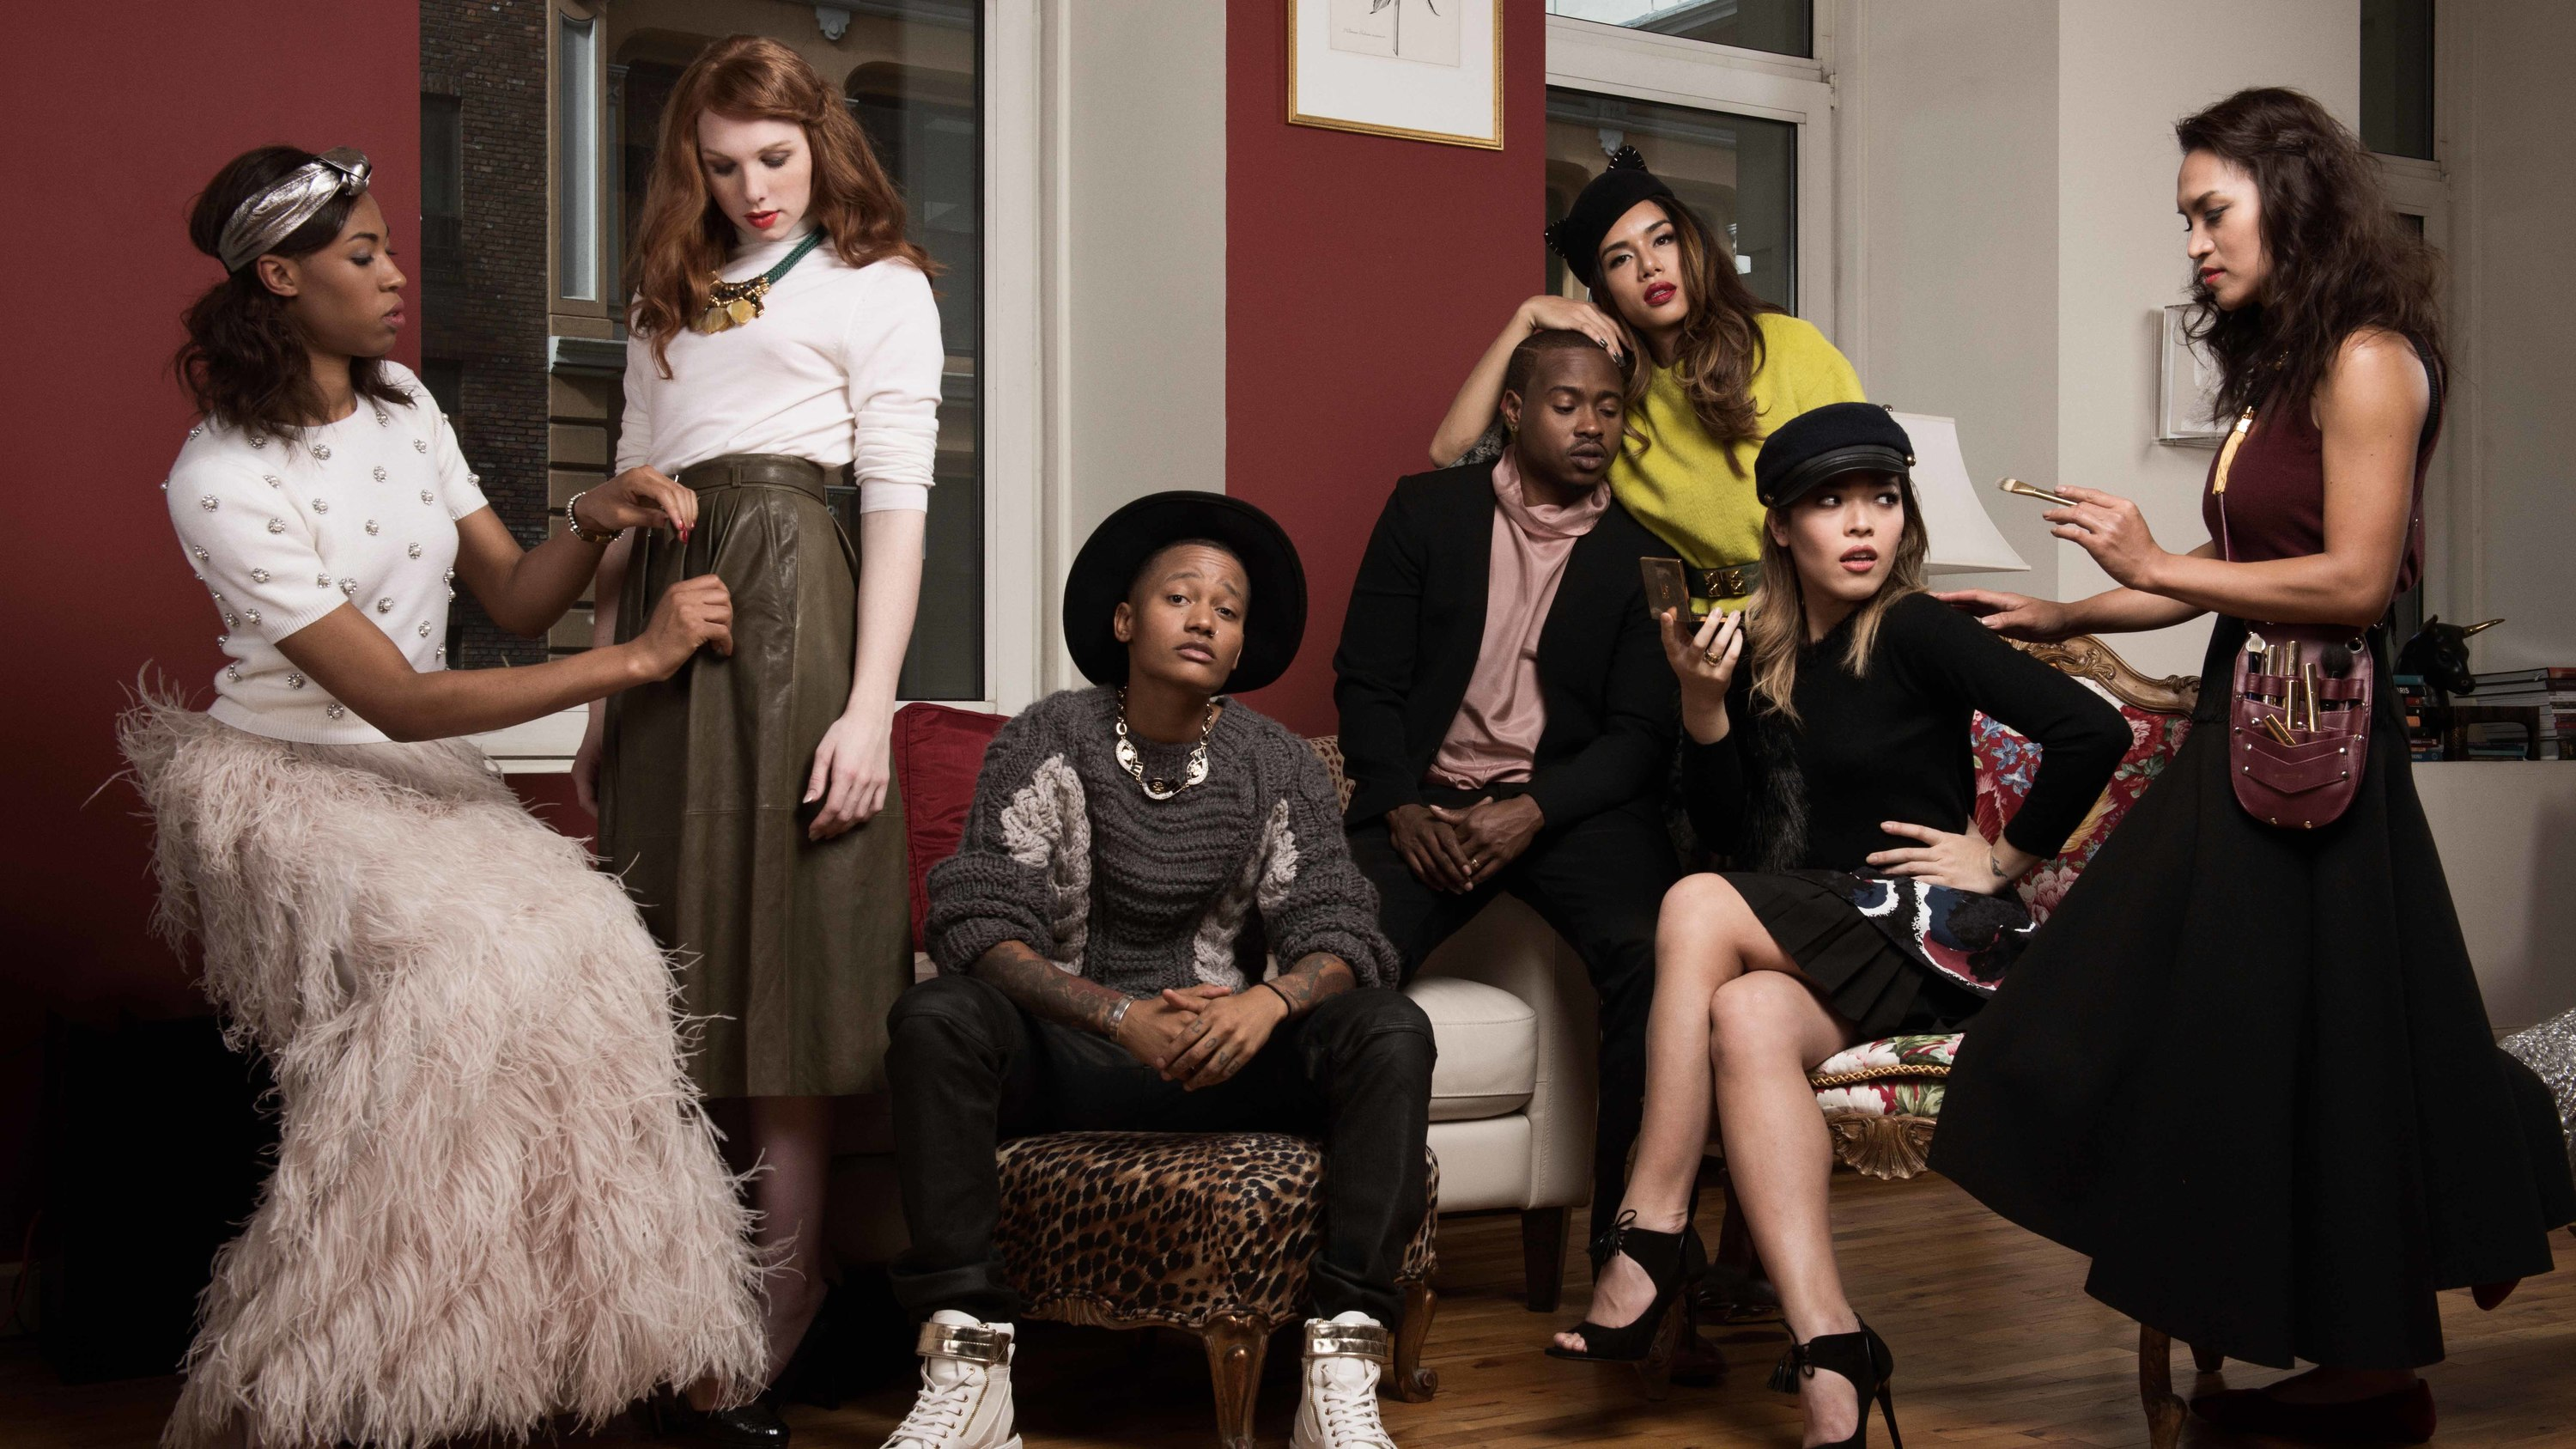 NYC's first exclusively transgender modeling agency is taking runways by storm